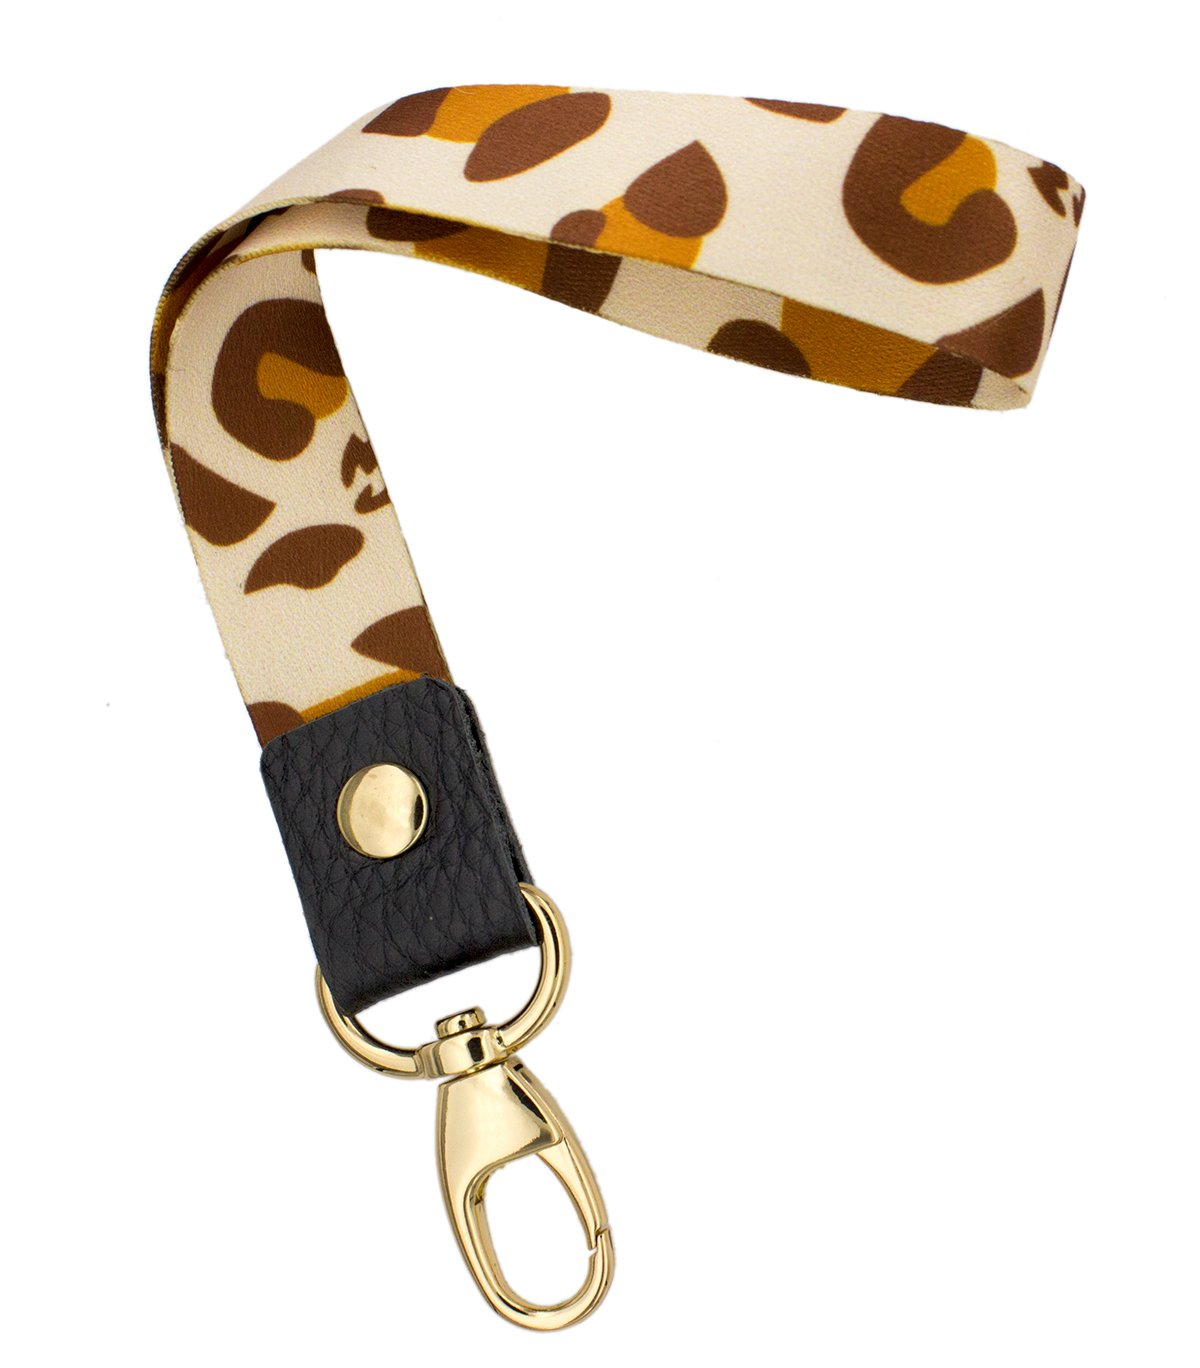 SENLLY Leopard Print Hand Wrist Lanyard Premium Quality Wristlet Strap with Metal Clasp and Genuine Leather, for Key Chain, Camera, Cell Mobile Phone, Charms, Lightweight Items etc